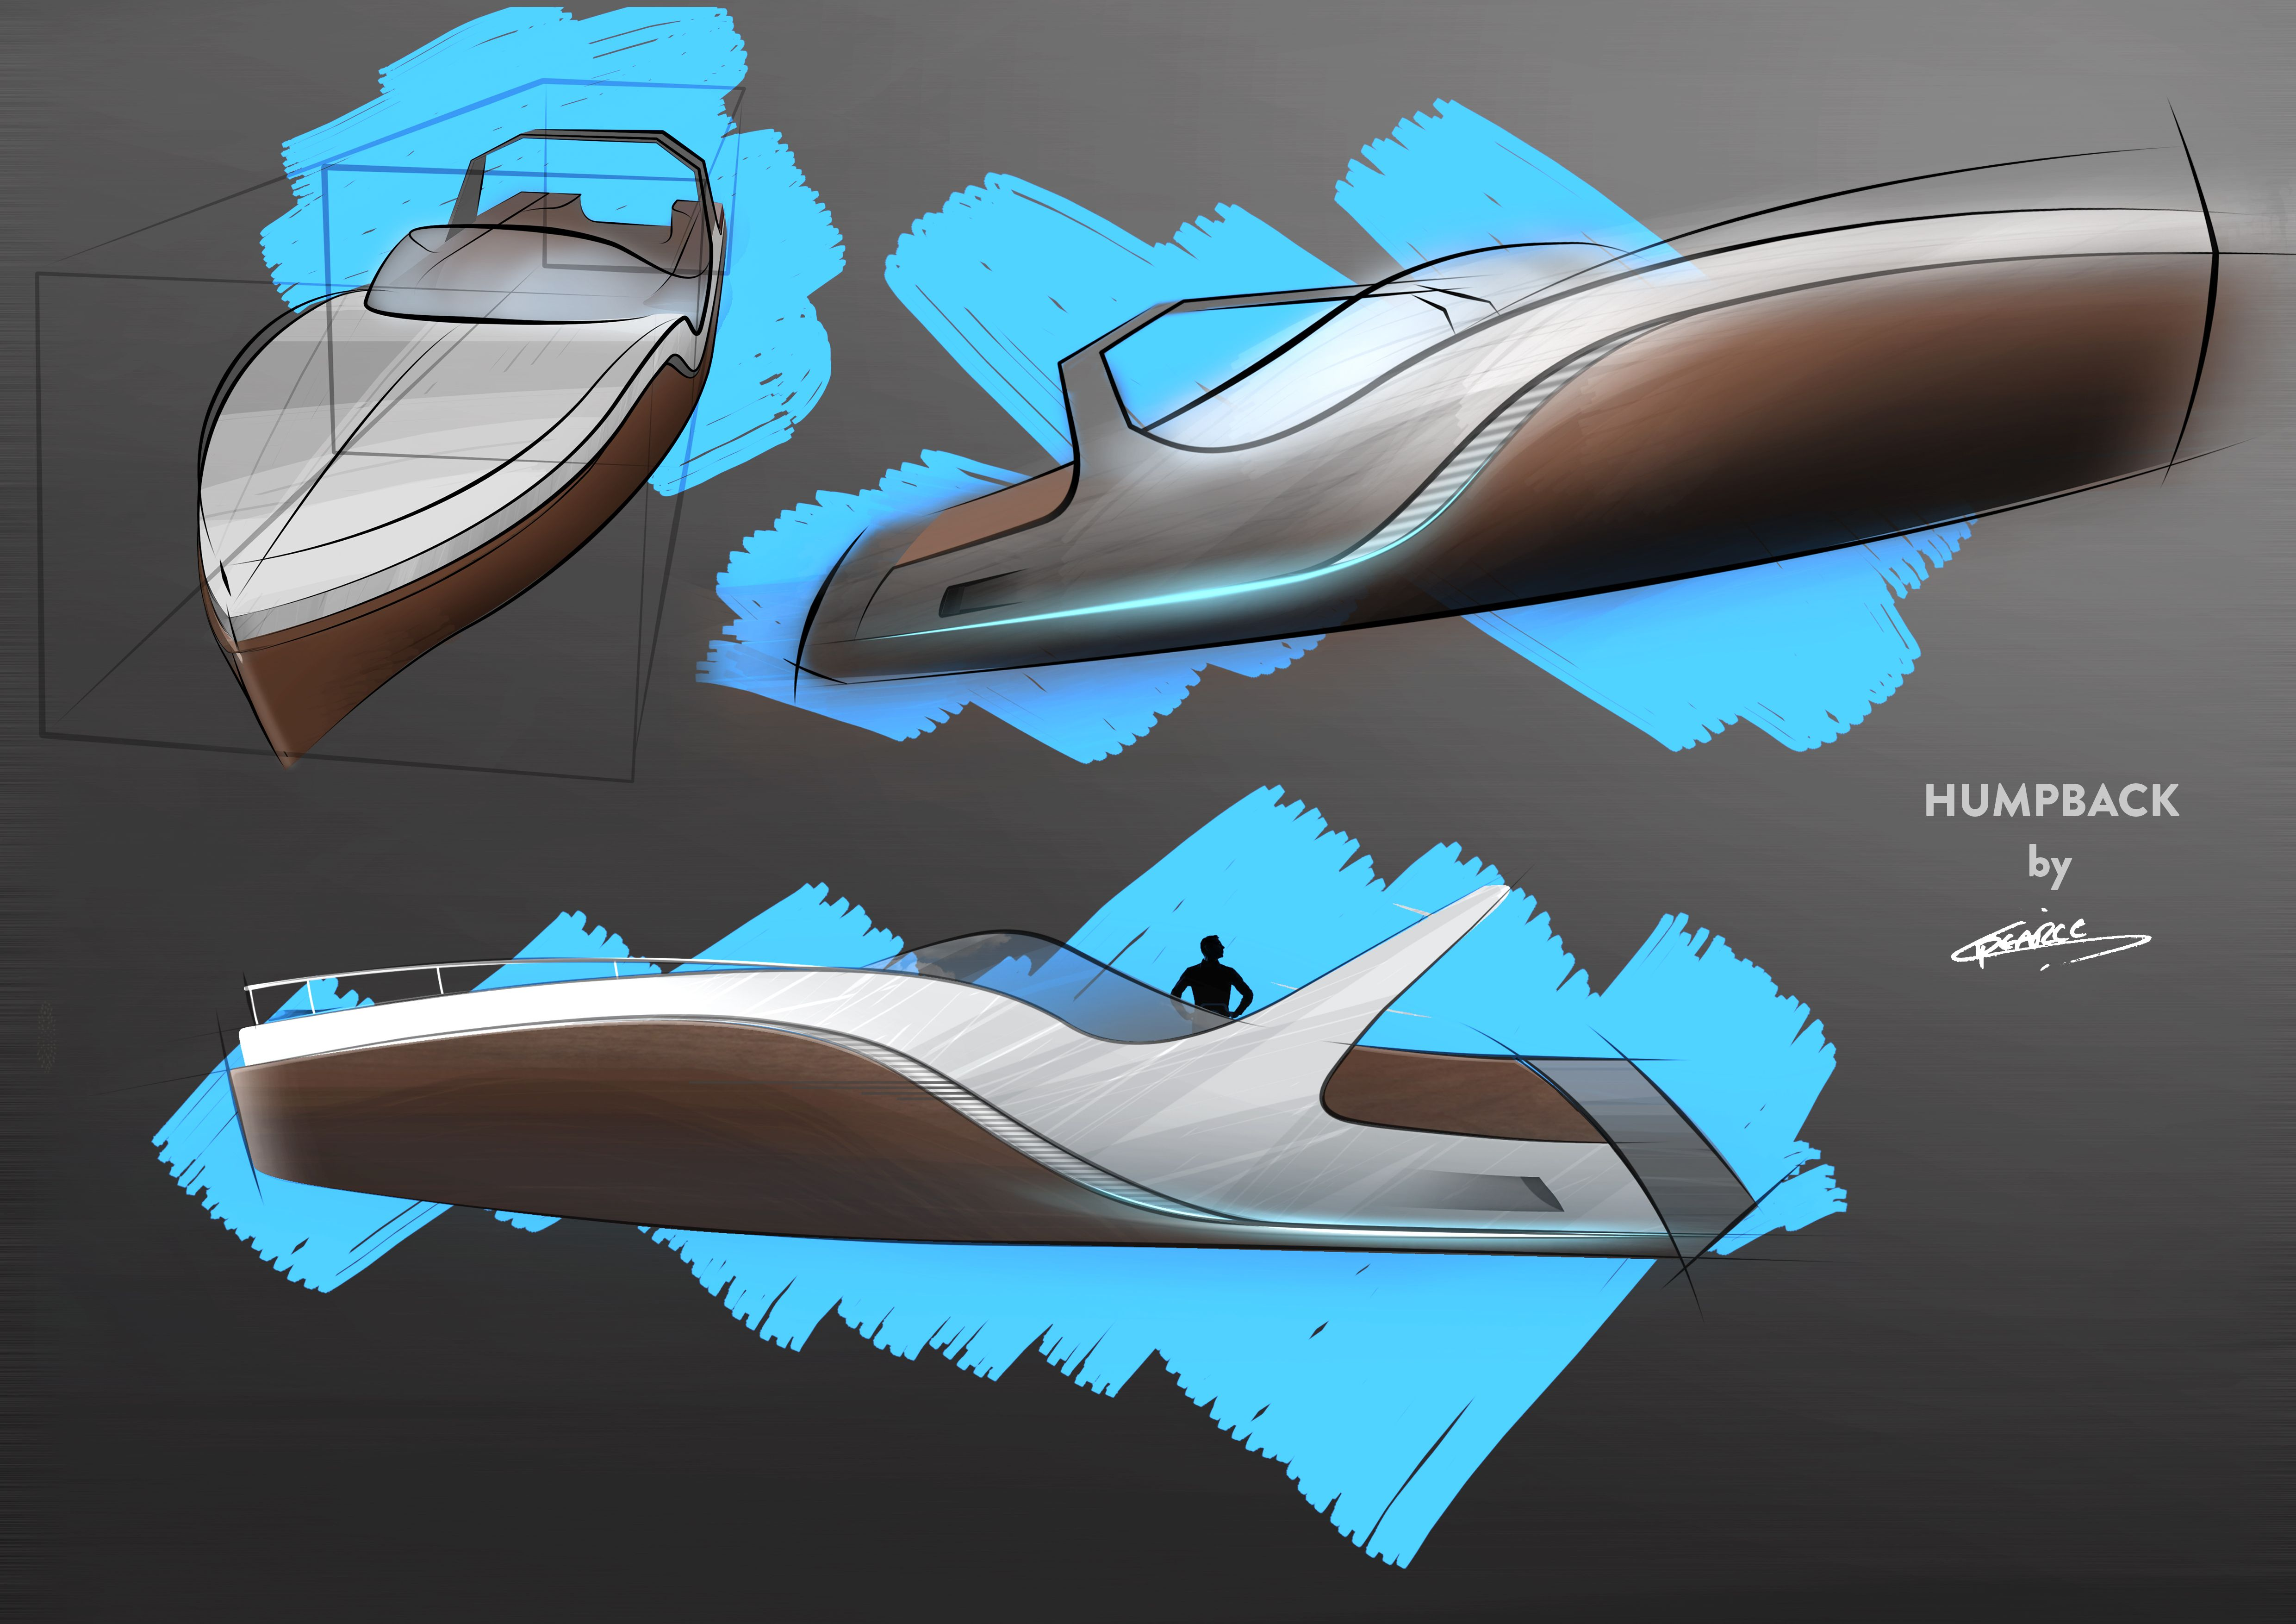 Humpback Boat Sketch WIP By Chris Pearce